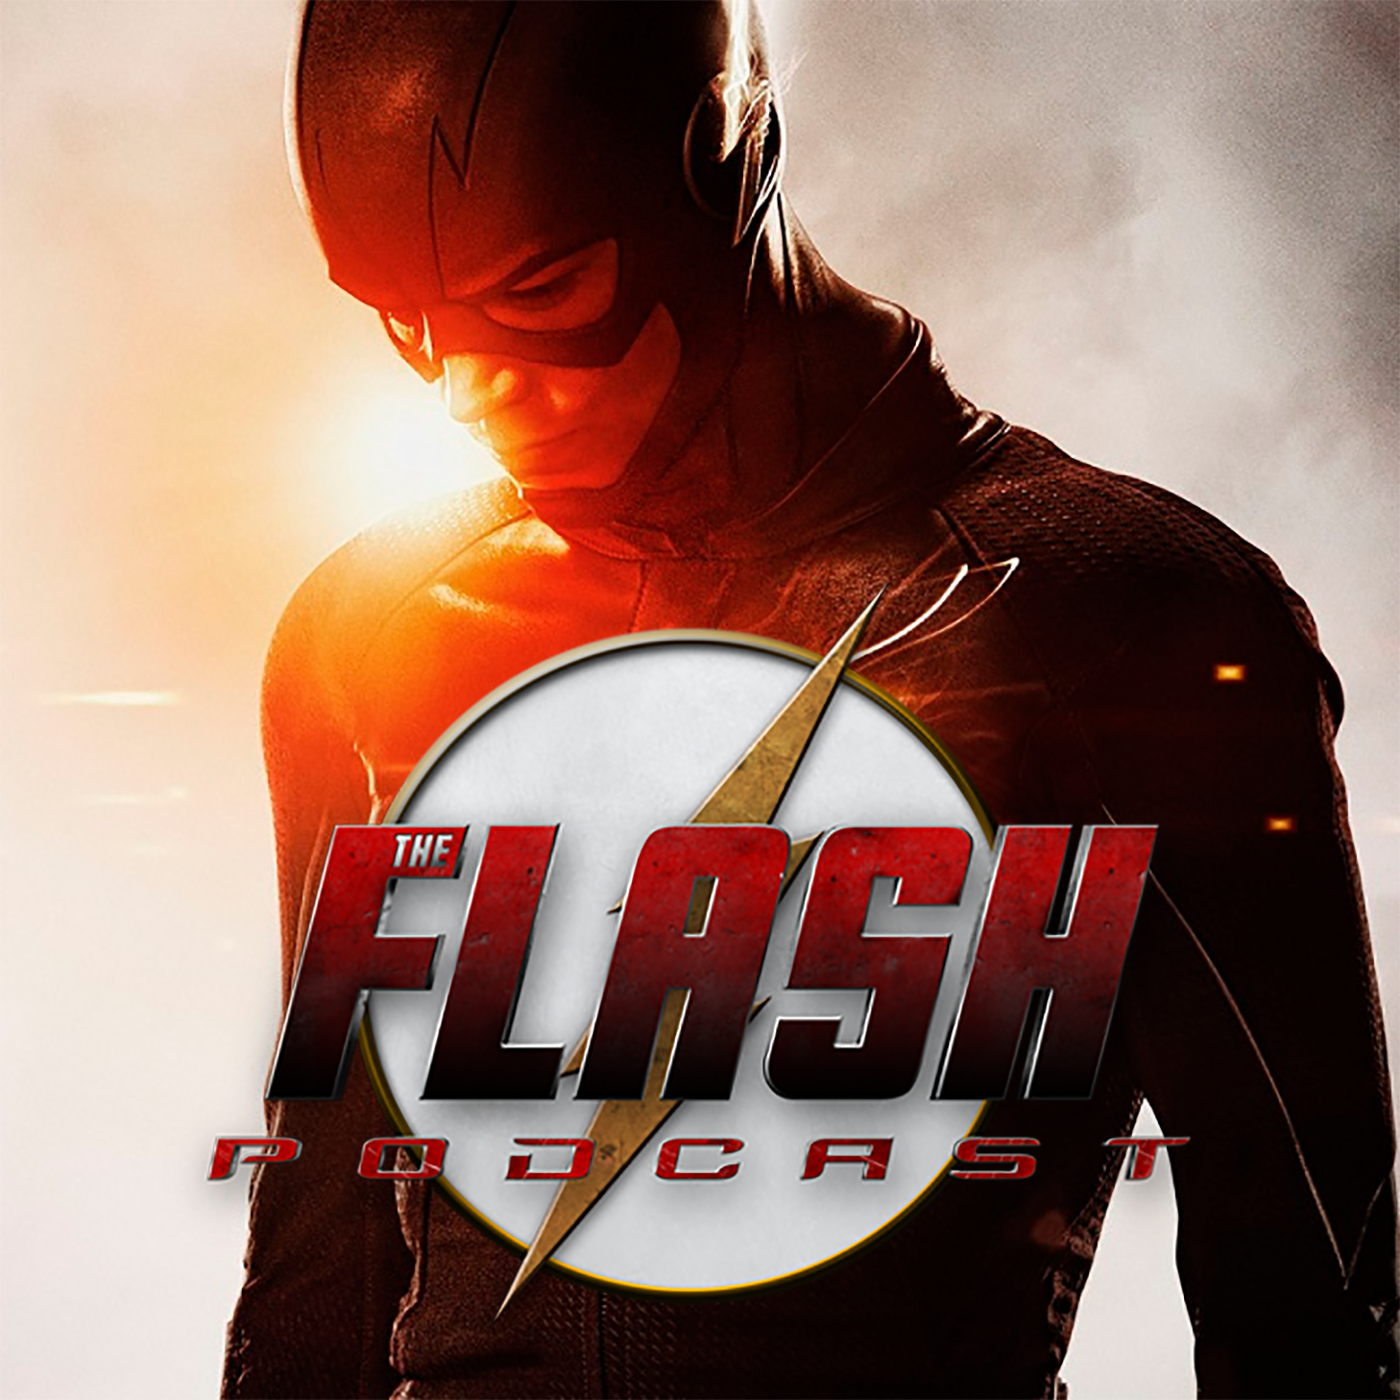 The Flash Podcast Season 1.5 – Iris West in Season 1